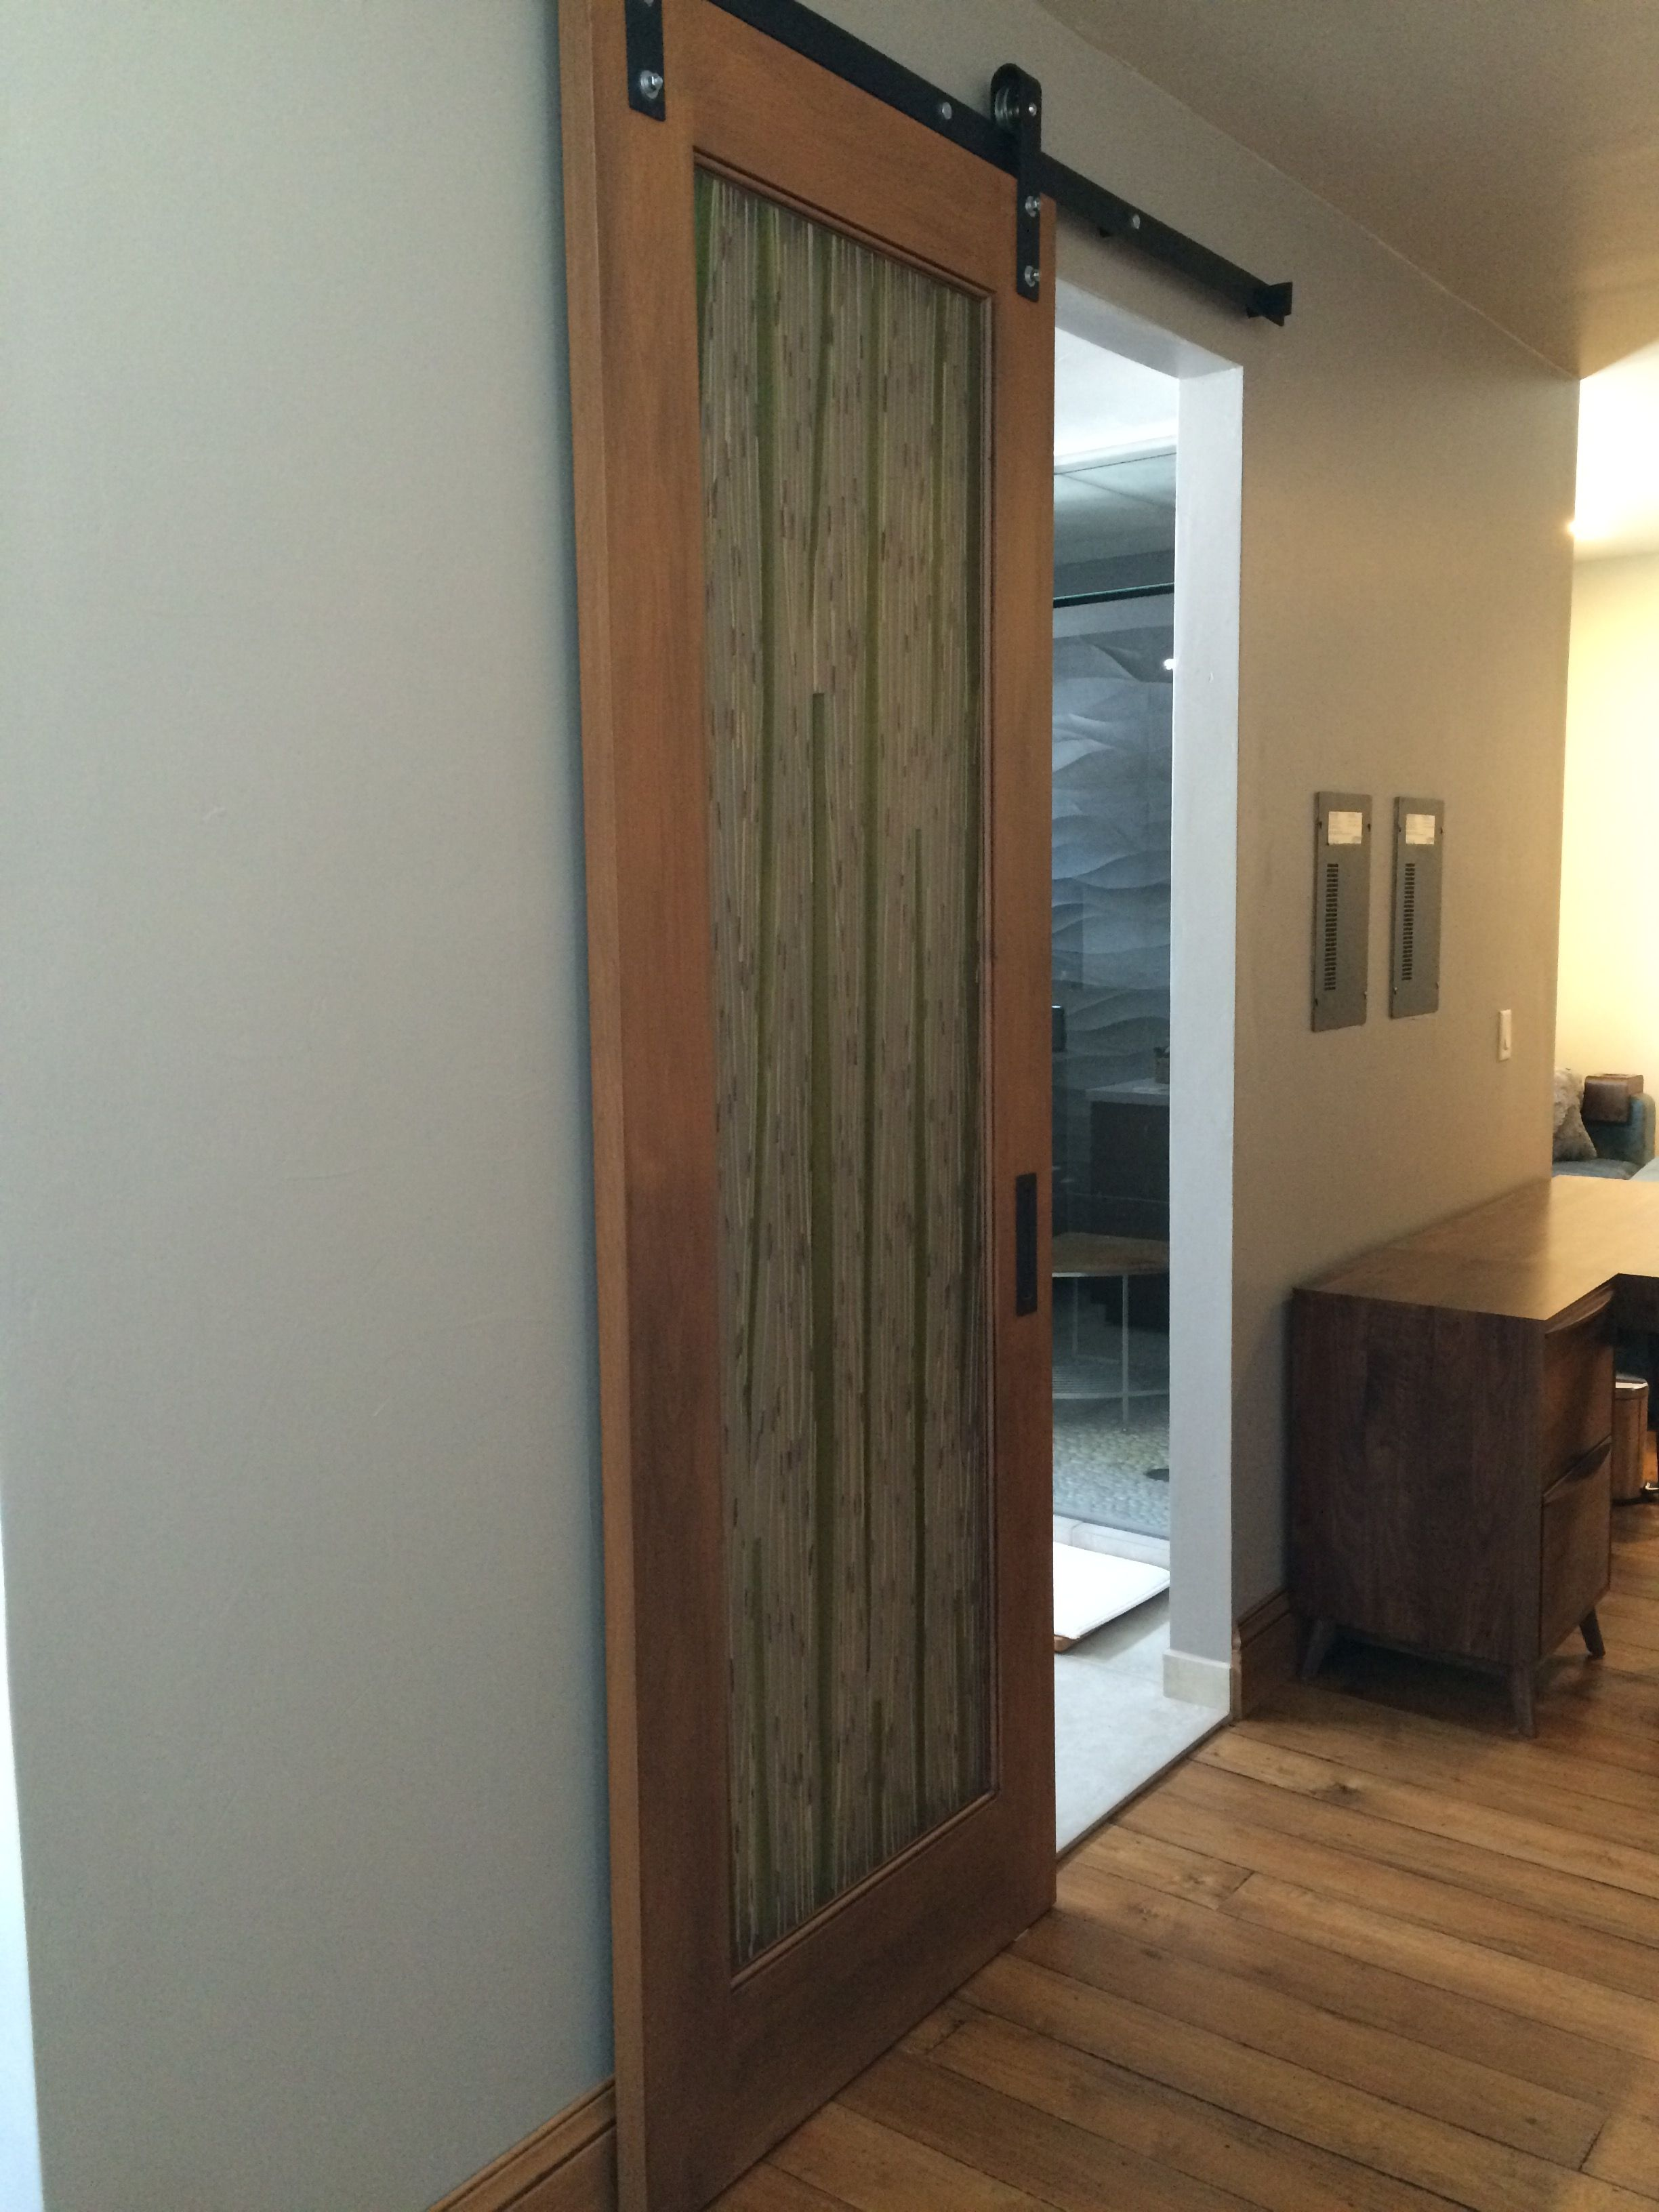 Sliding Barn Door 3 Form Bamboo Arcturus Studio Interior Design Bedroom Door Design Custom Kitchens Design Studio Interior